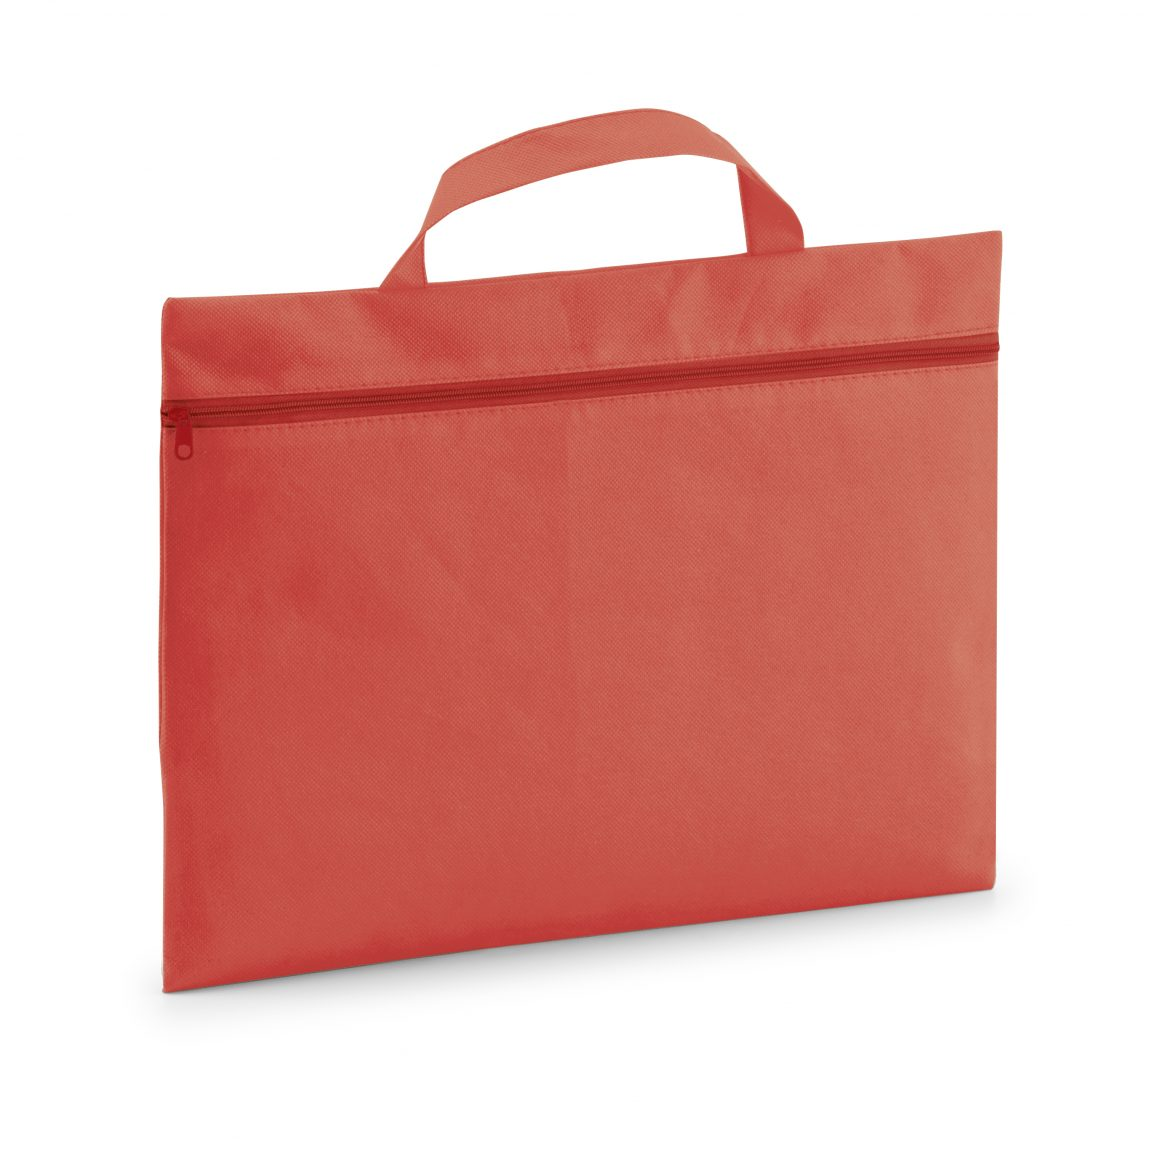 Massen Eco Document Bag Product Code GP92357